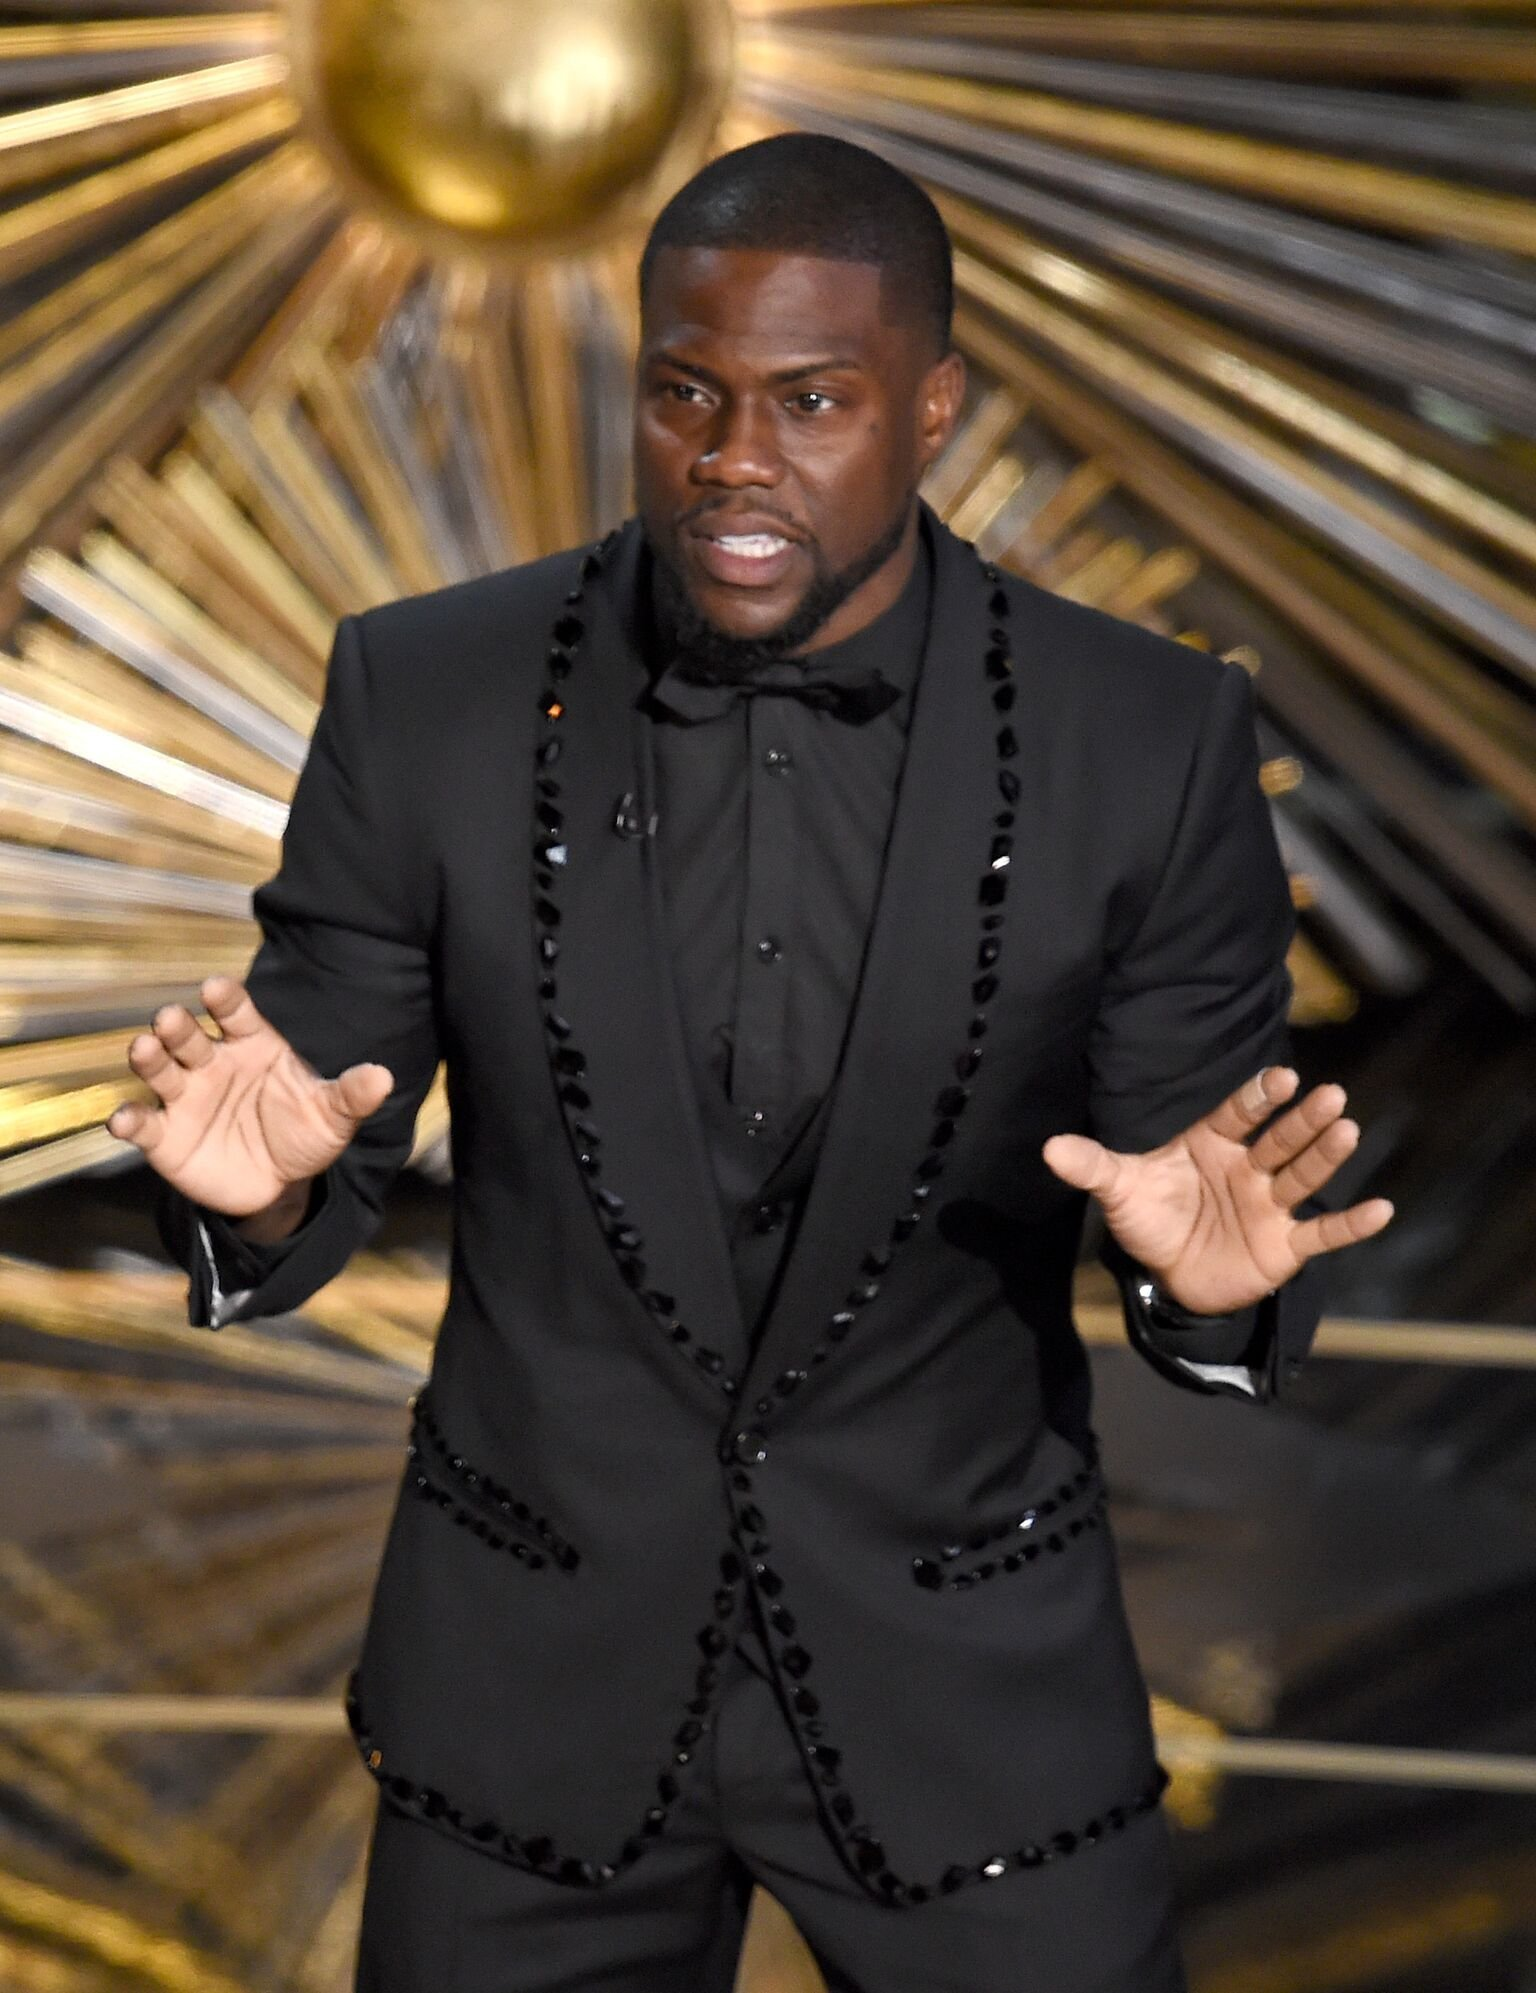 Actor Kevin Hart speaks onstage during the 88th Annual Academy Awards at the Dolby Theater l Shutterstock